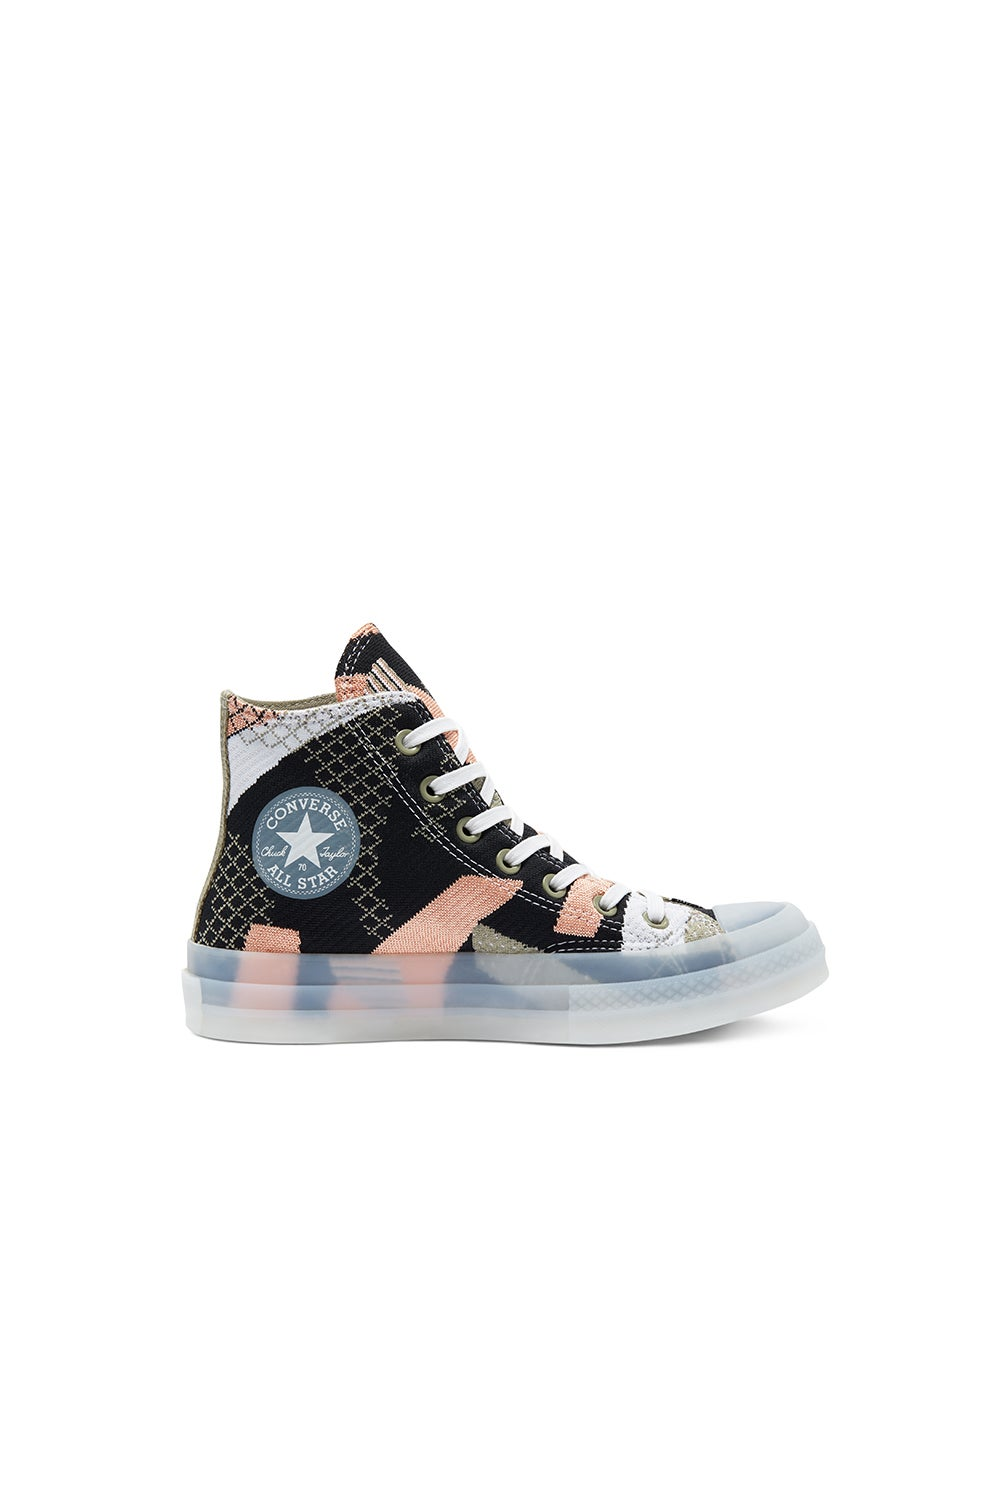 Converse Chuck Taylor all Star Knit Cantaloupe/Black/White